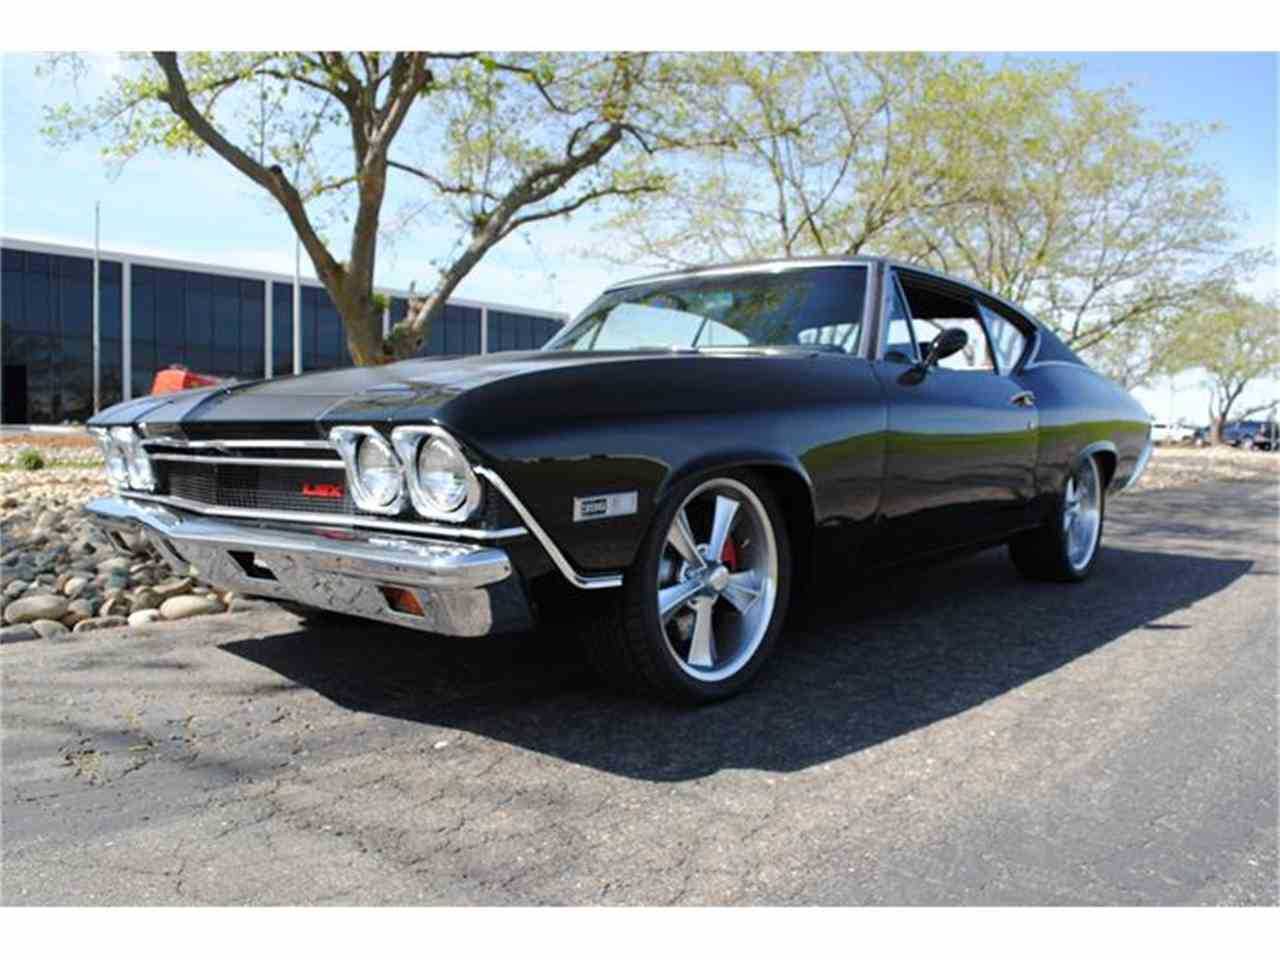 Cars For Sale In Rocklin